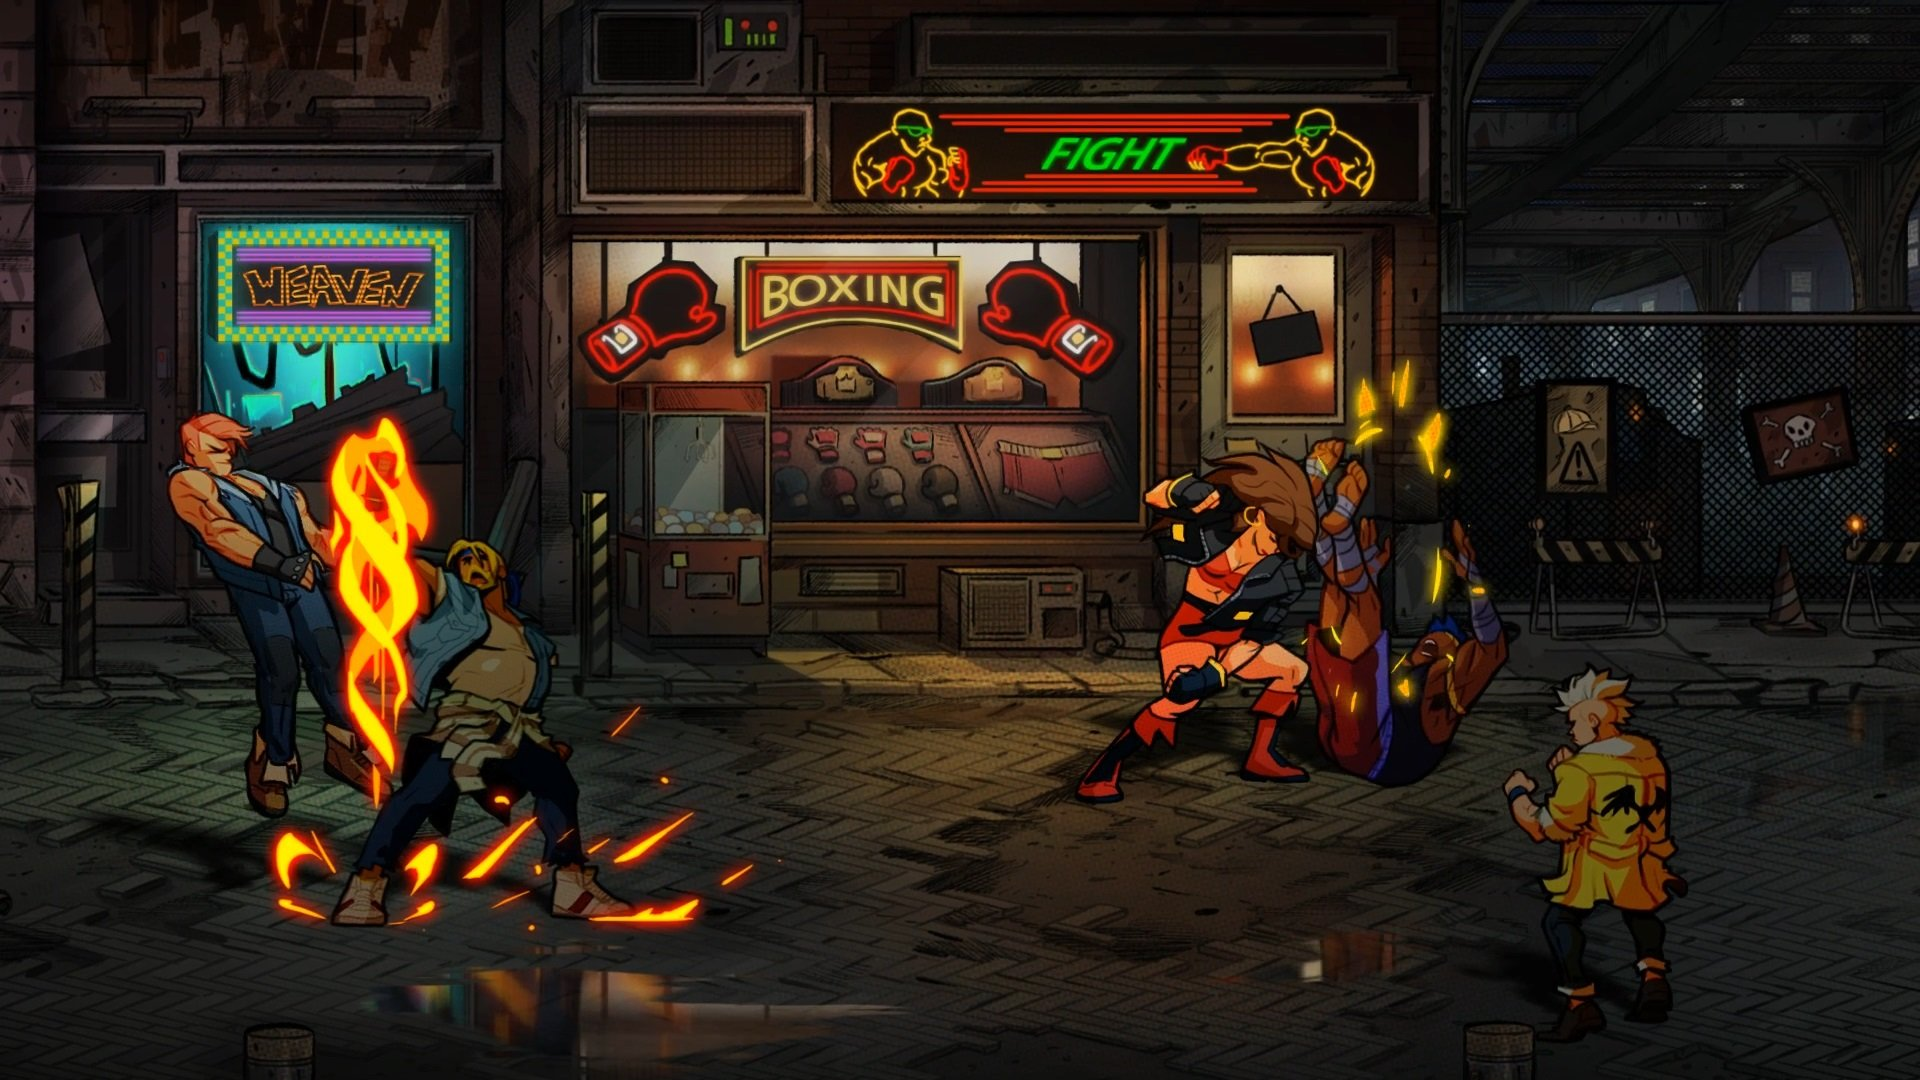 Streets of Rage 4 looks amazing, with great character detail.